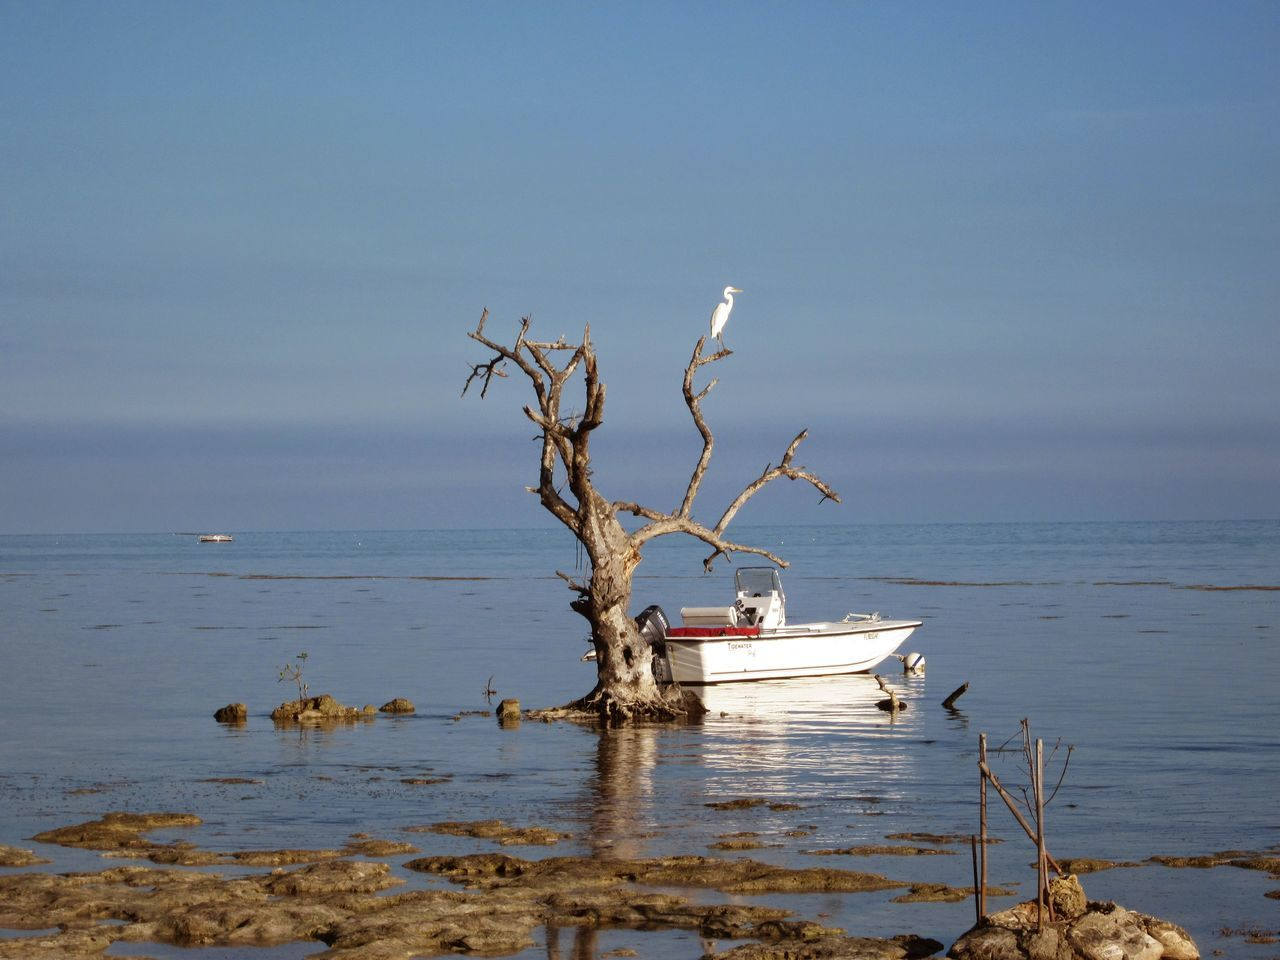 Sea Ocean View Seascape SeasideShore No People Big Pine Key Oceanside Seascapes Shorebird Beauty In Nature Tranquility Water Florida Skies Boats And Sea Bird On A Branch Bird On A Tree Bird And Sea EyeEmNewHere